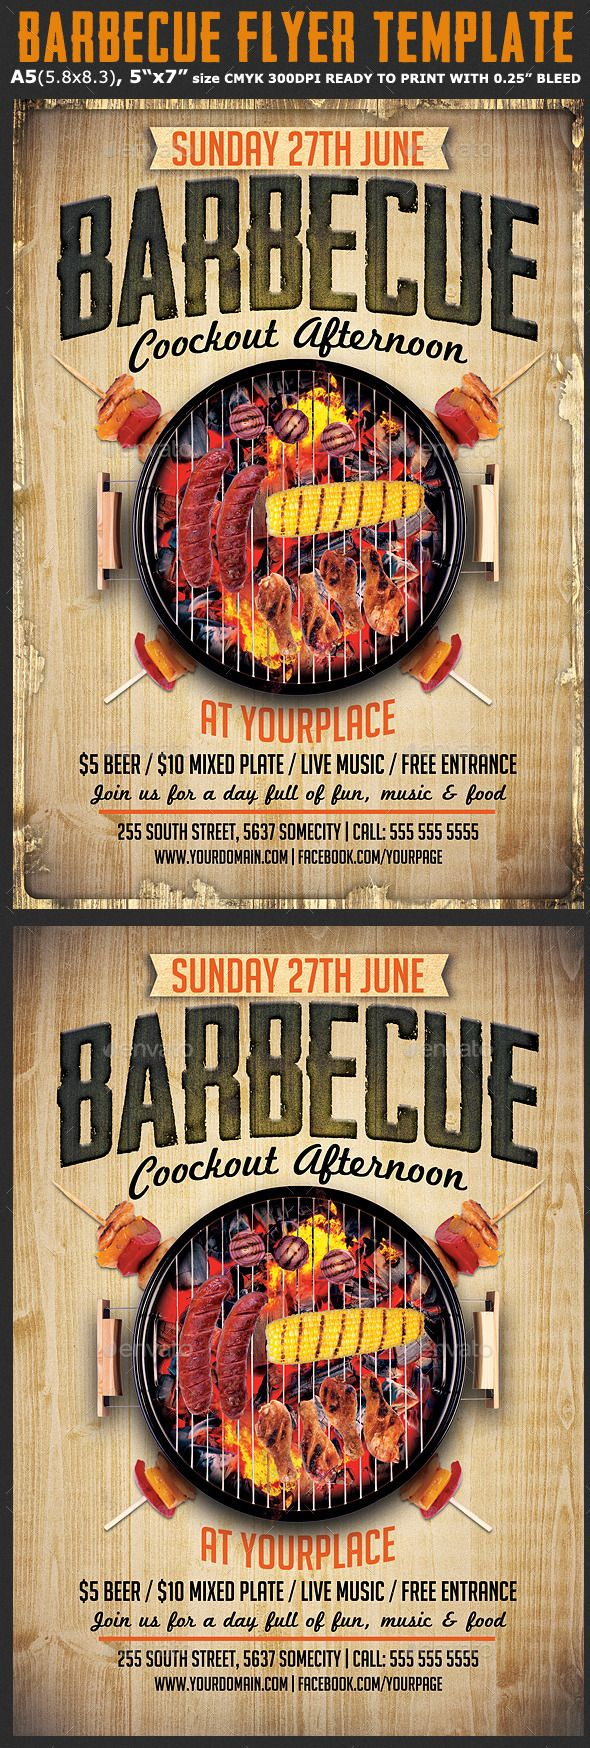 Barbecue Flyer Template #4th of july #barbecue #barbecue flyer • Available here → http://graphicriver.net/item/barbecue-flyer-template/11085683?s_rank=1683&ref=pxcr